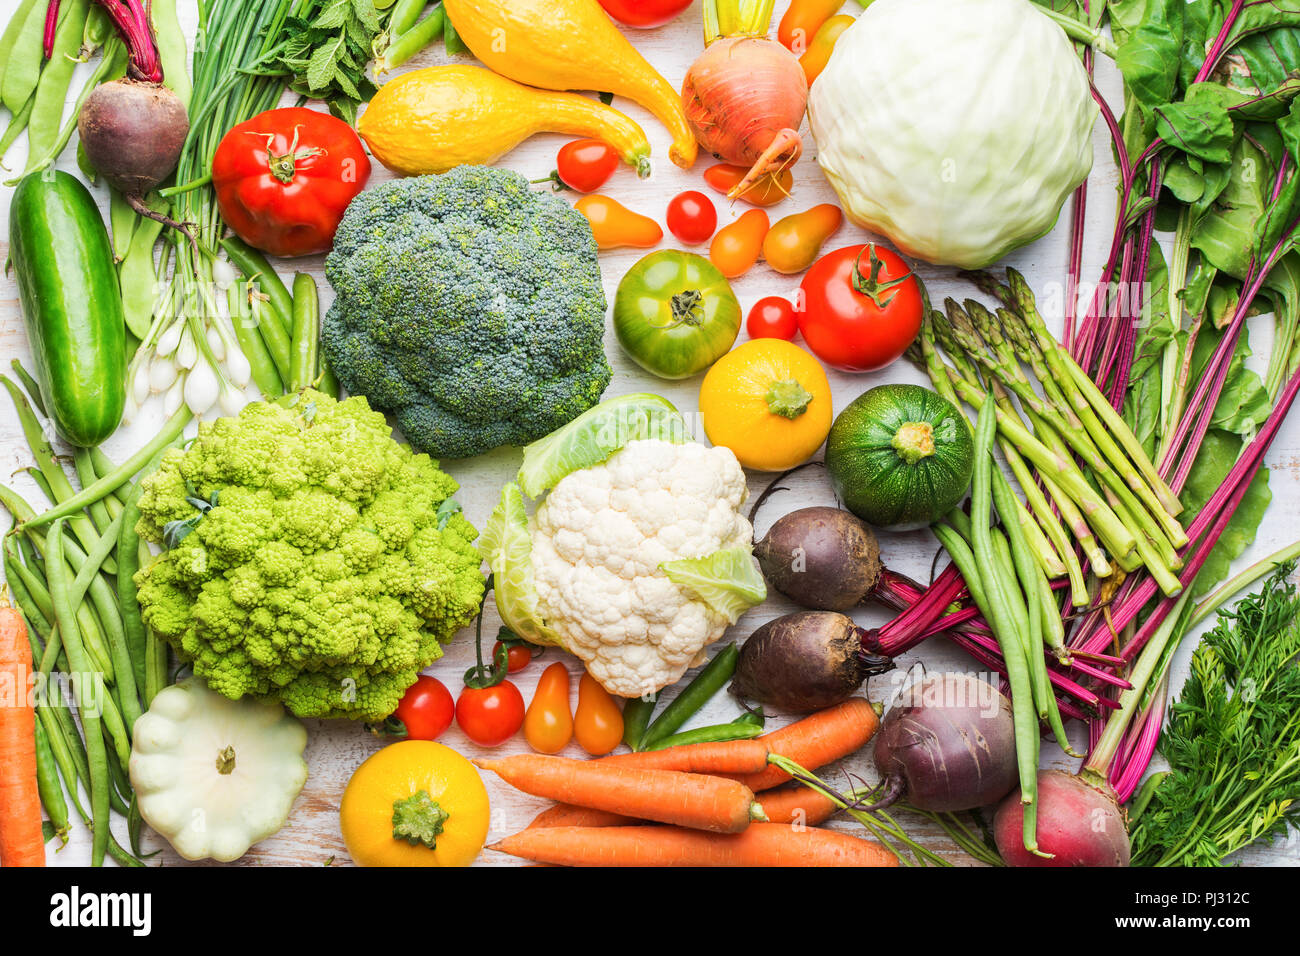 Colorful organic vegetables background on white wooden table, healthy background, broccoli cauliflower tomatoes spring onions cucumbers carrots beetroot, top view, selective focus - Stock Image